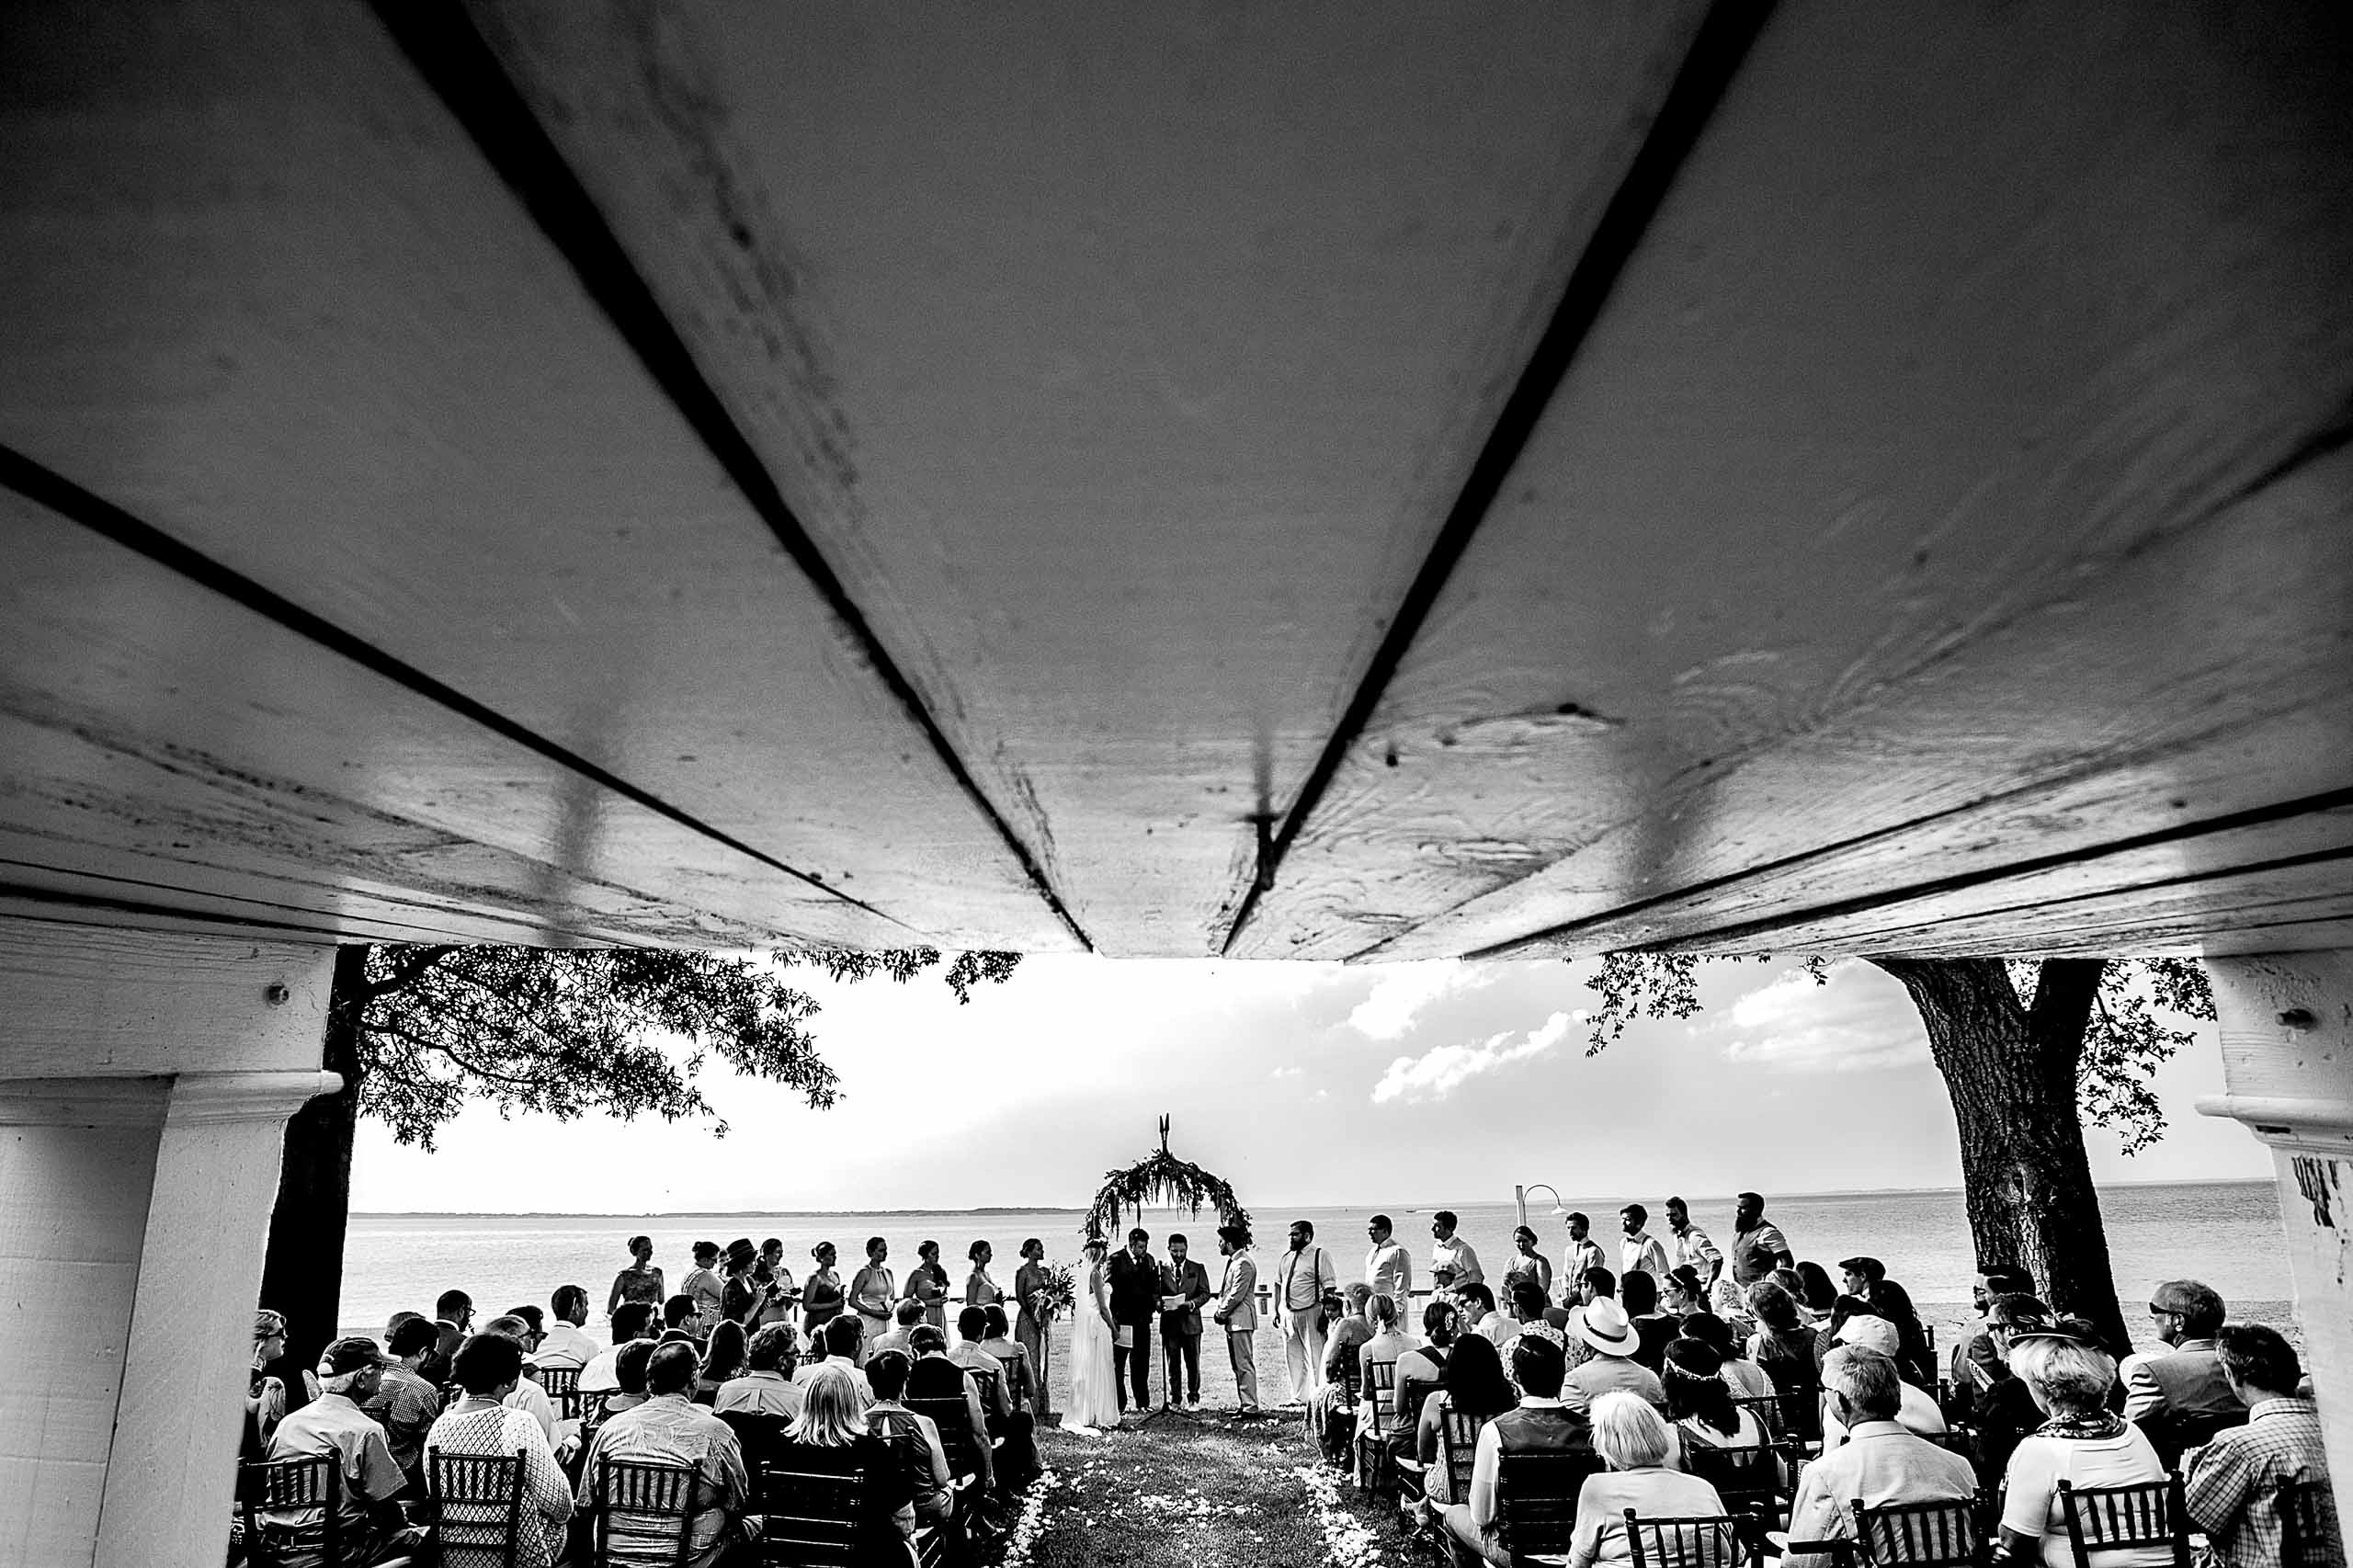 Wide angle perspective during a Chesapeake Bay wedding ceremony in Maryland at Wades Point Inn.